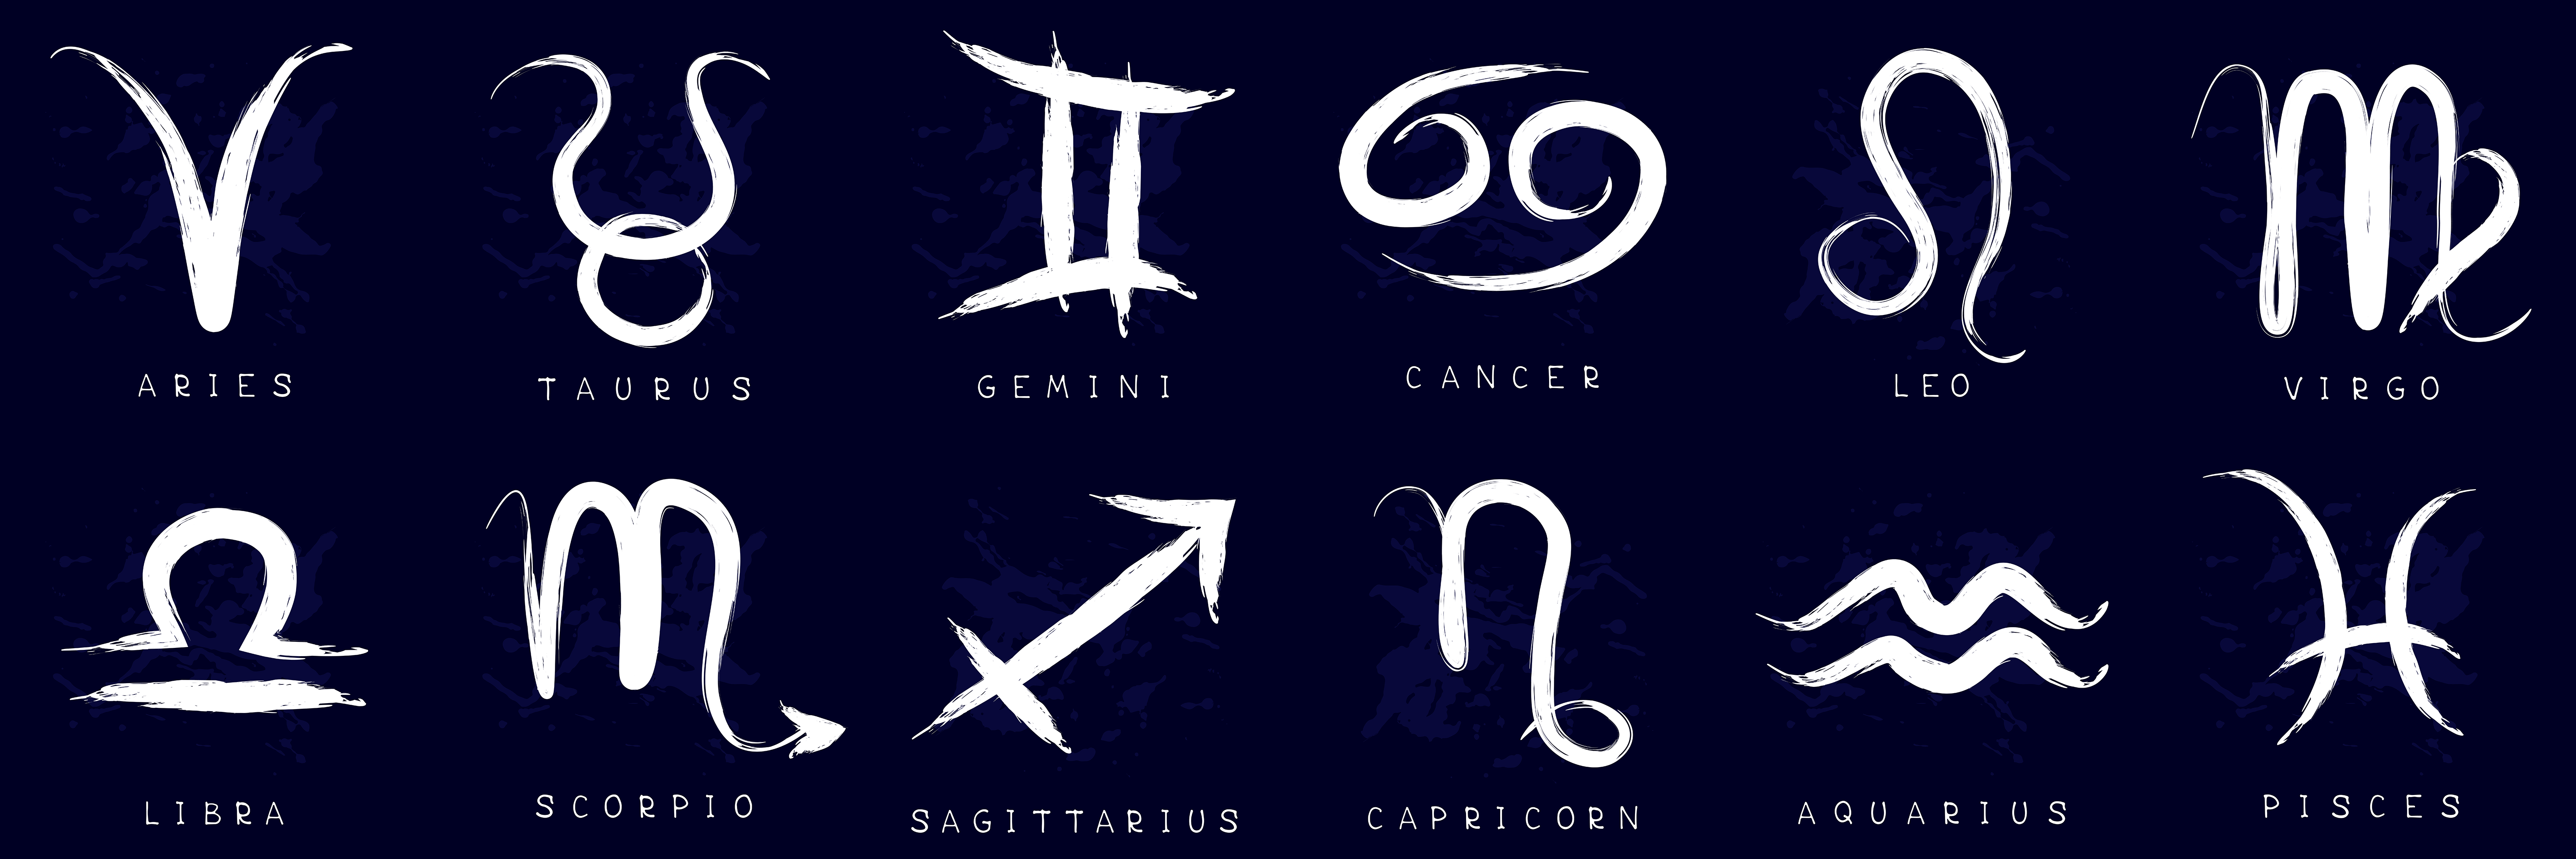 Beyond The Horoscope All About The 12 Zodiac Signs Astrology Hub